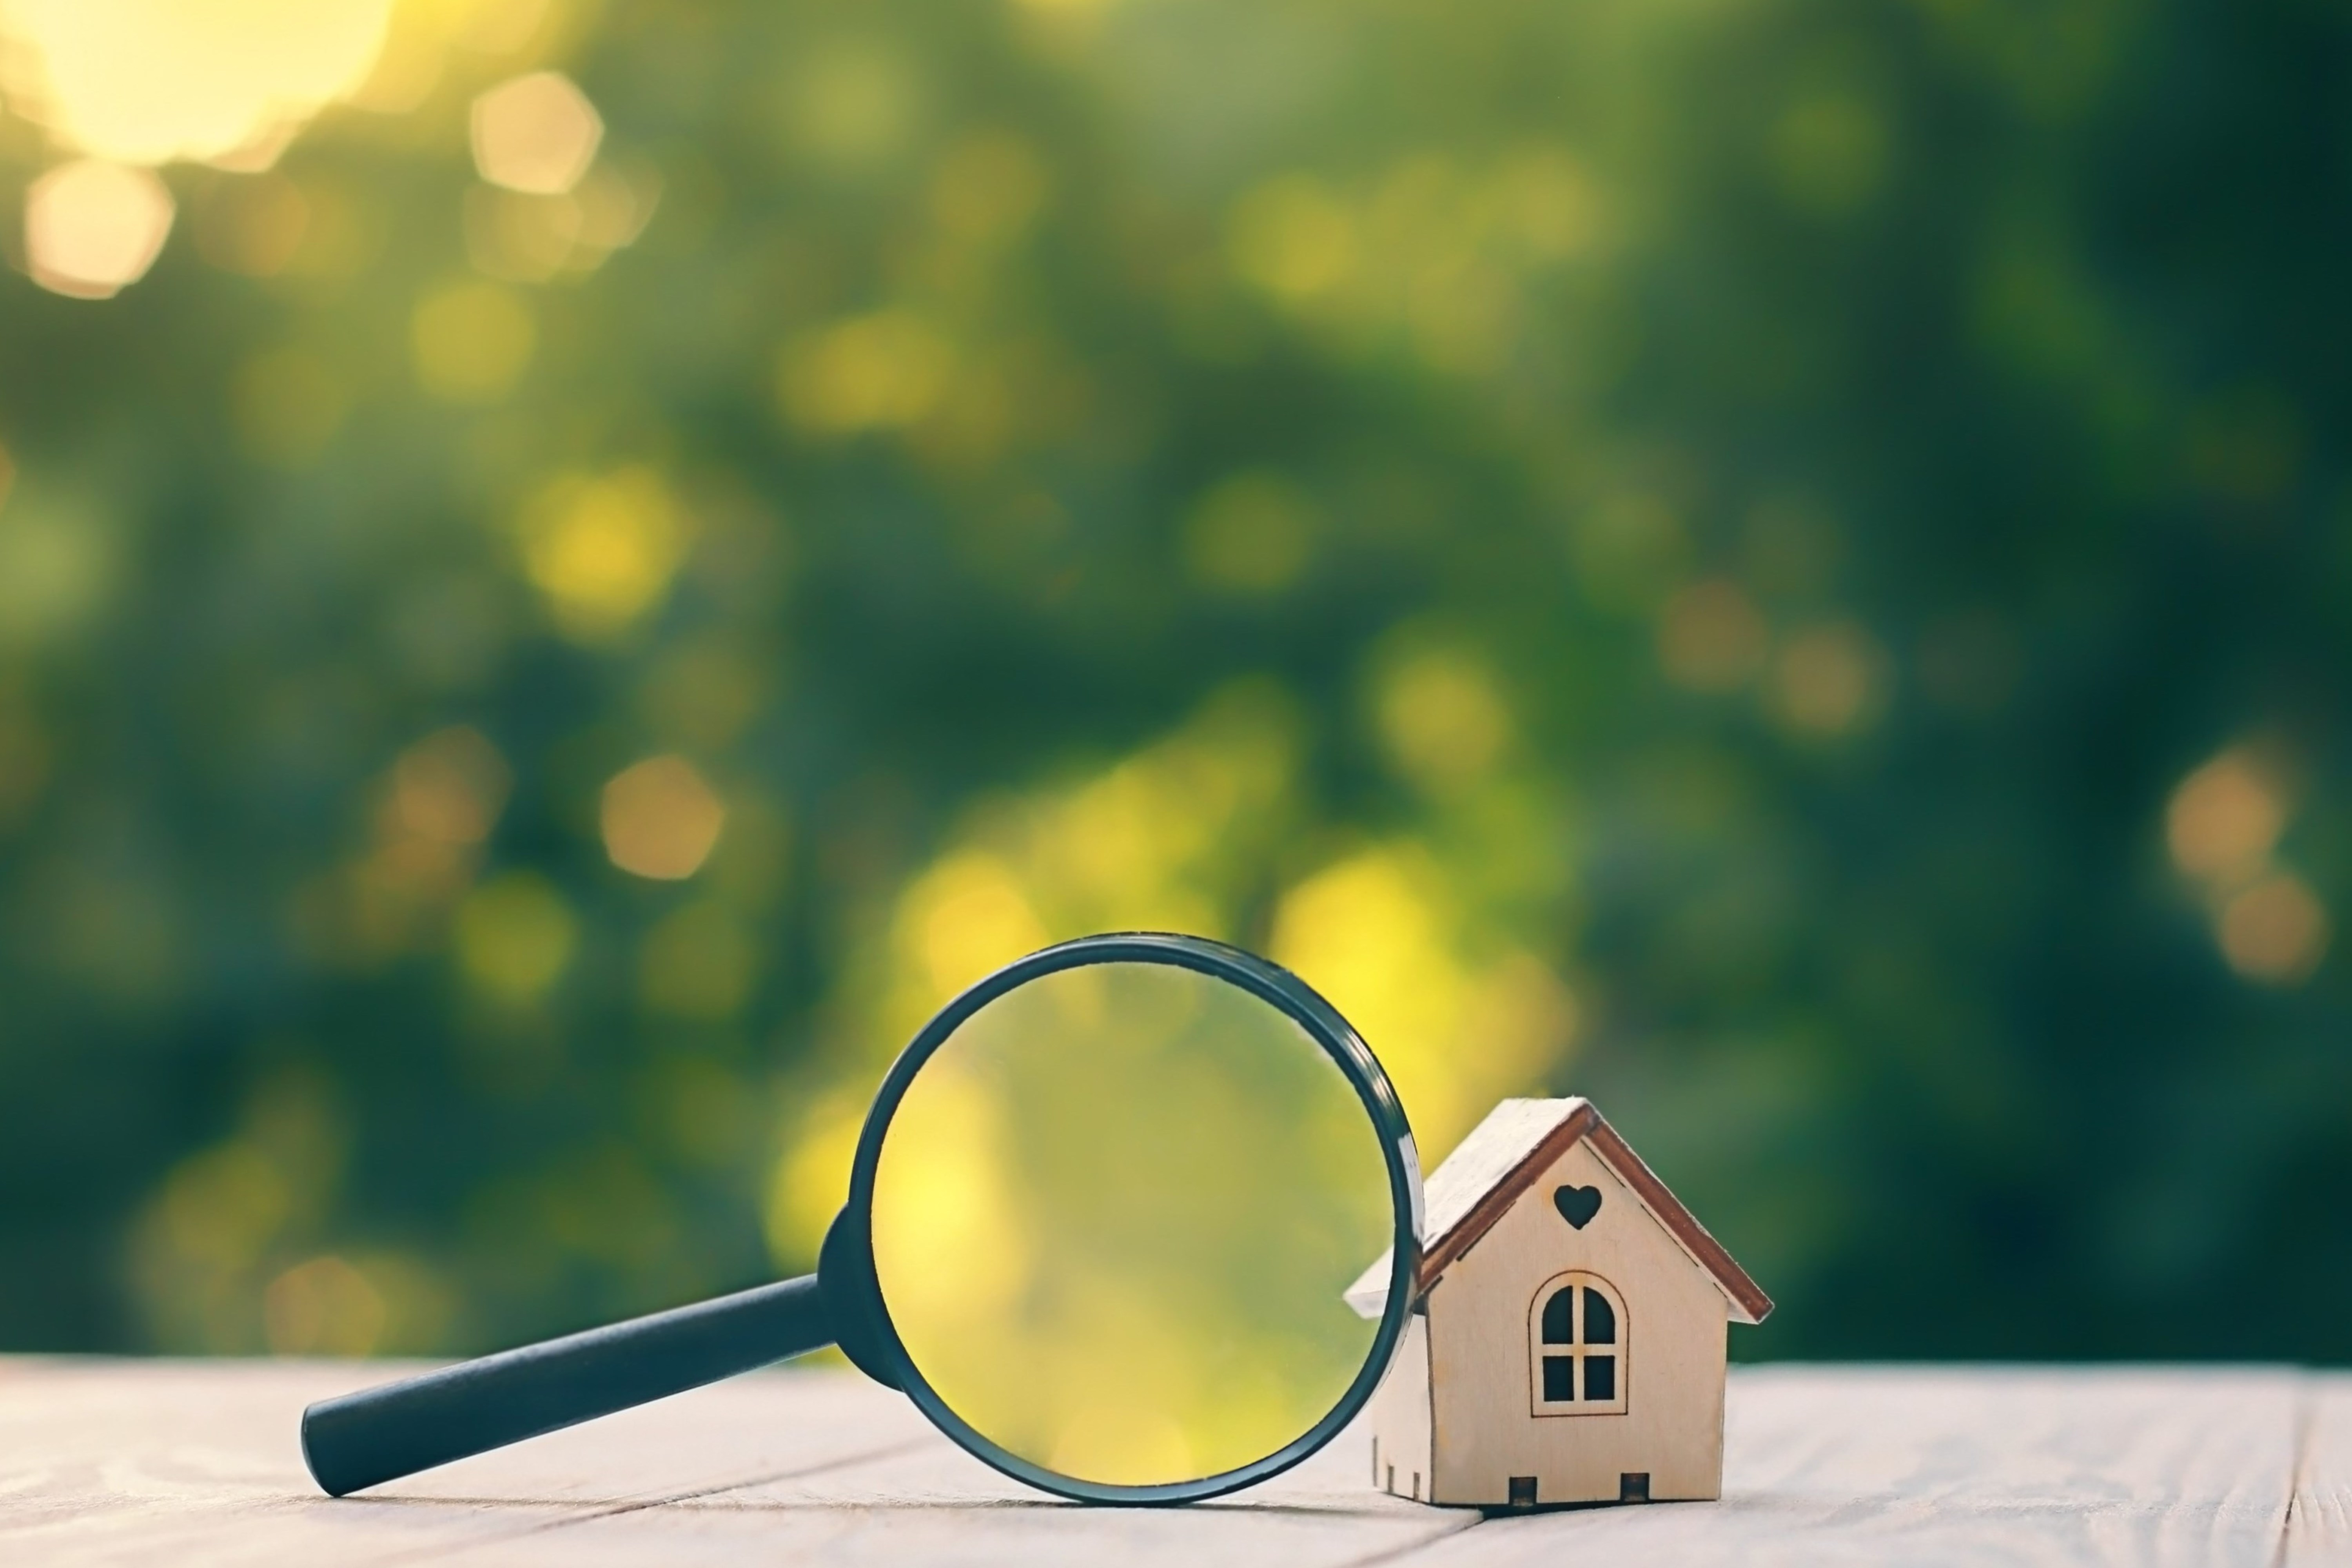 House with a magnify glass